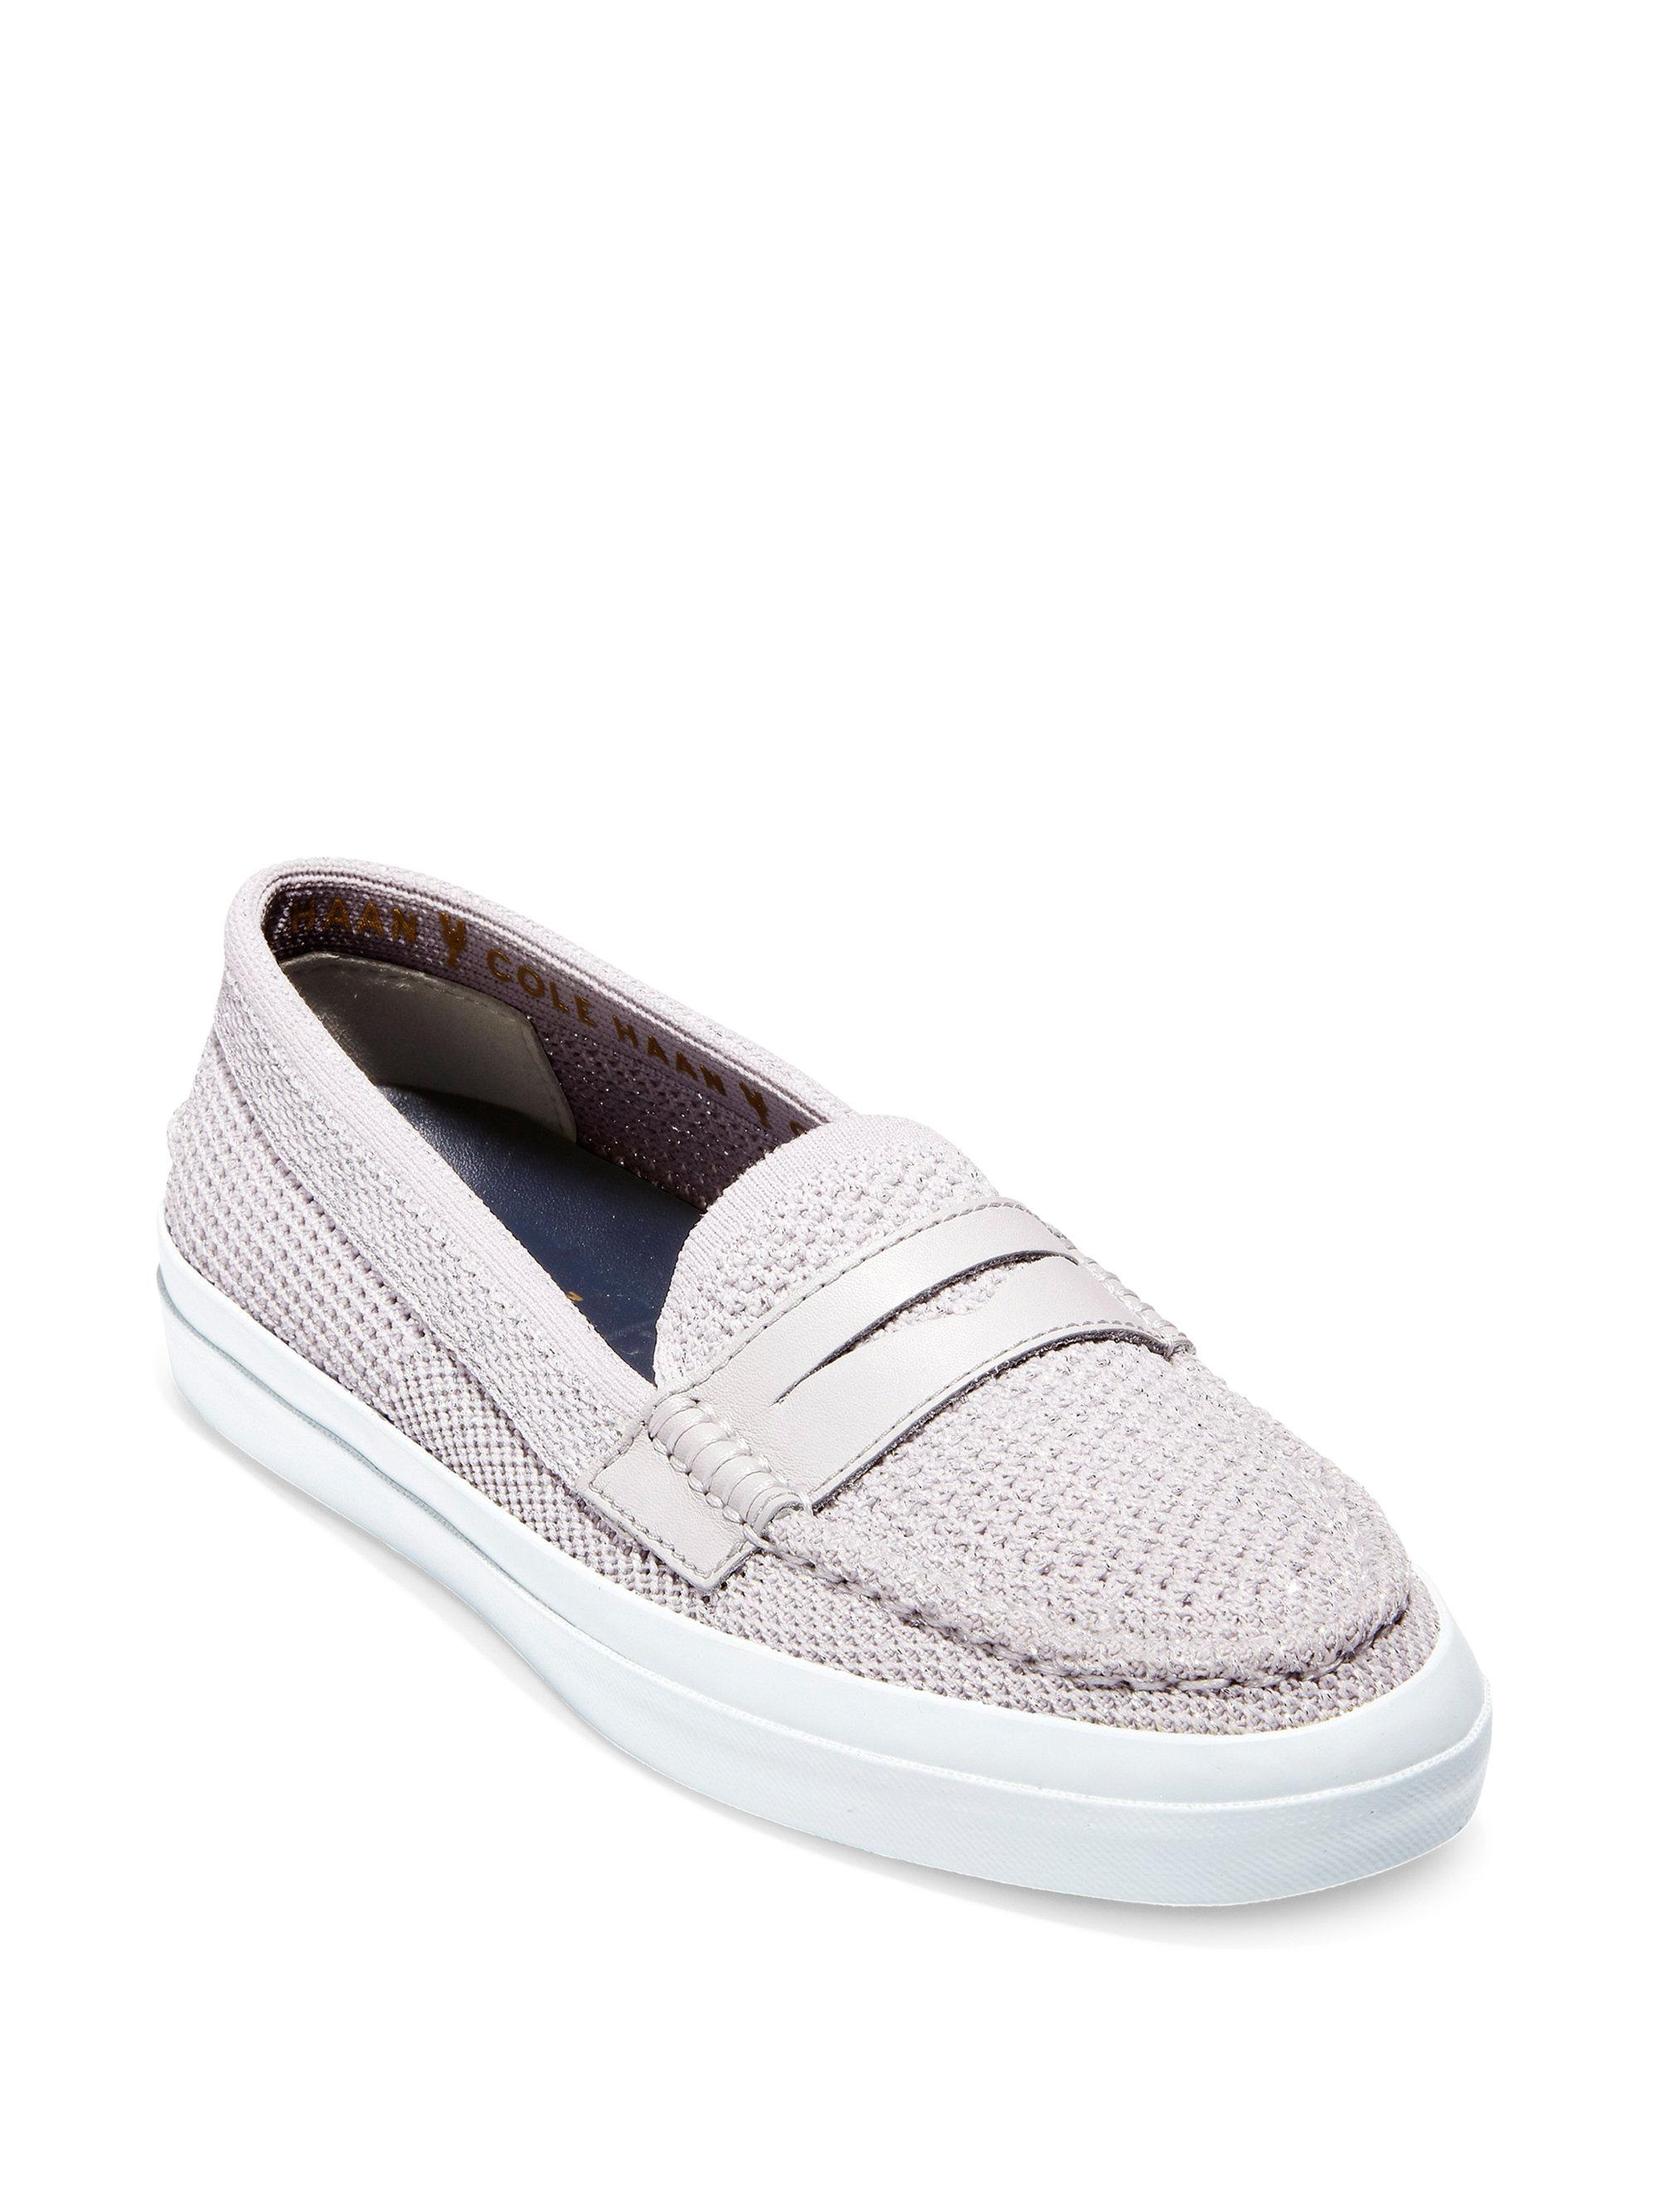 Cole Haan Pinch Weekender Metallic Cotton Penny Loafers cHaTXb6dN